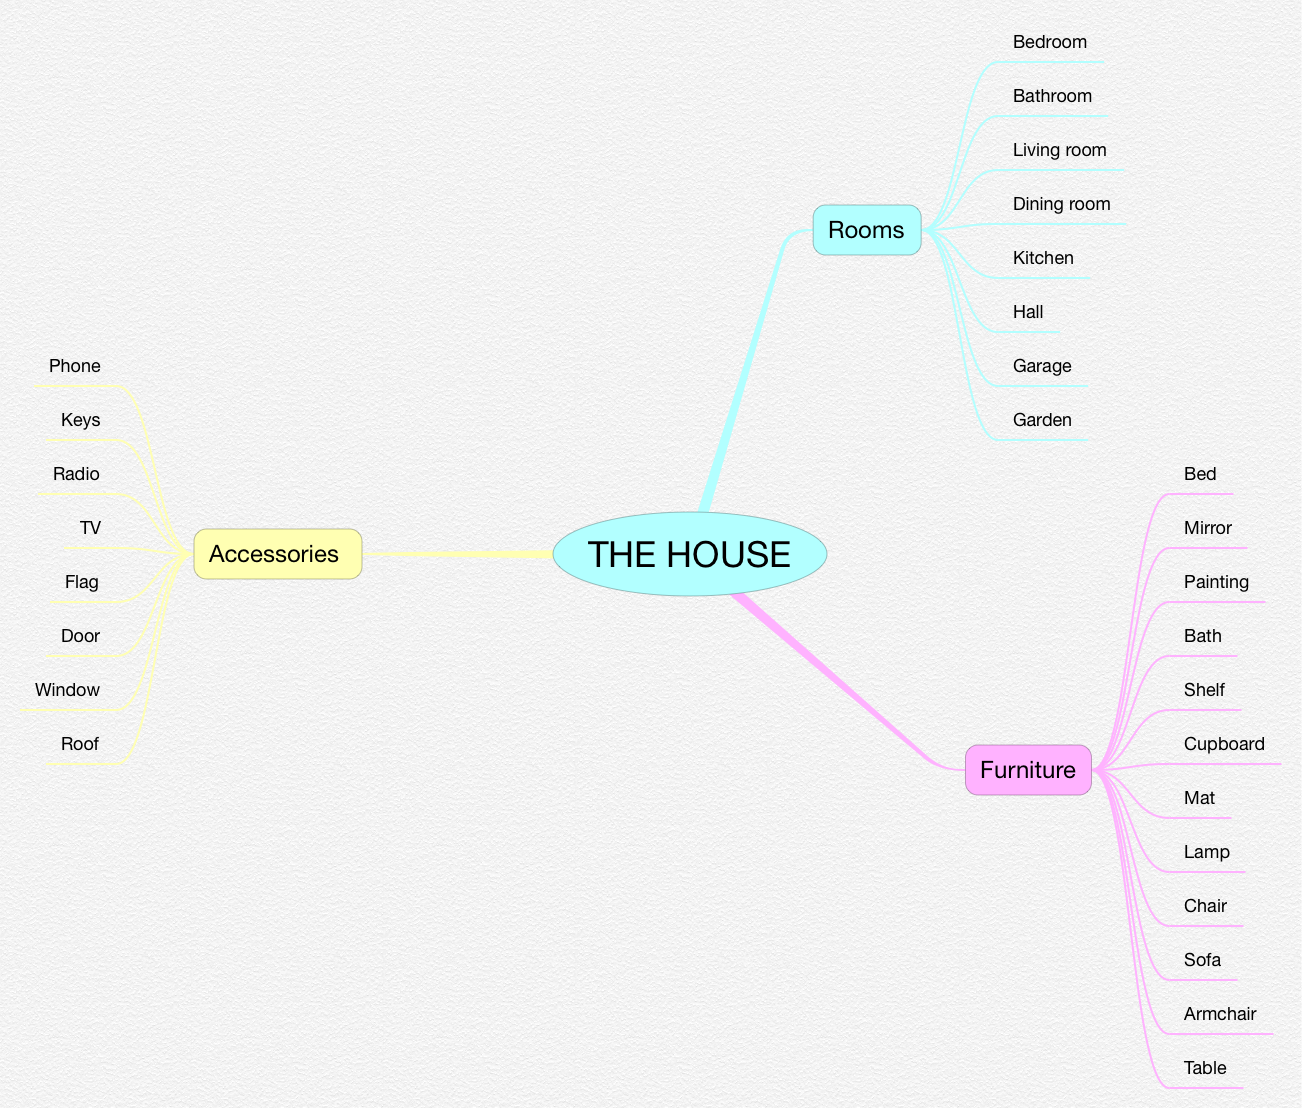 INGLES_THE HOUSE_2